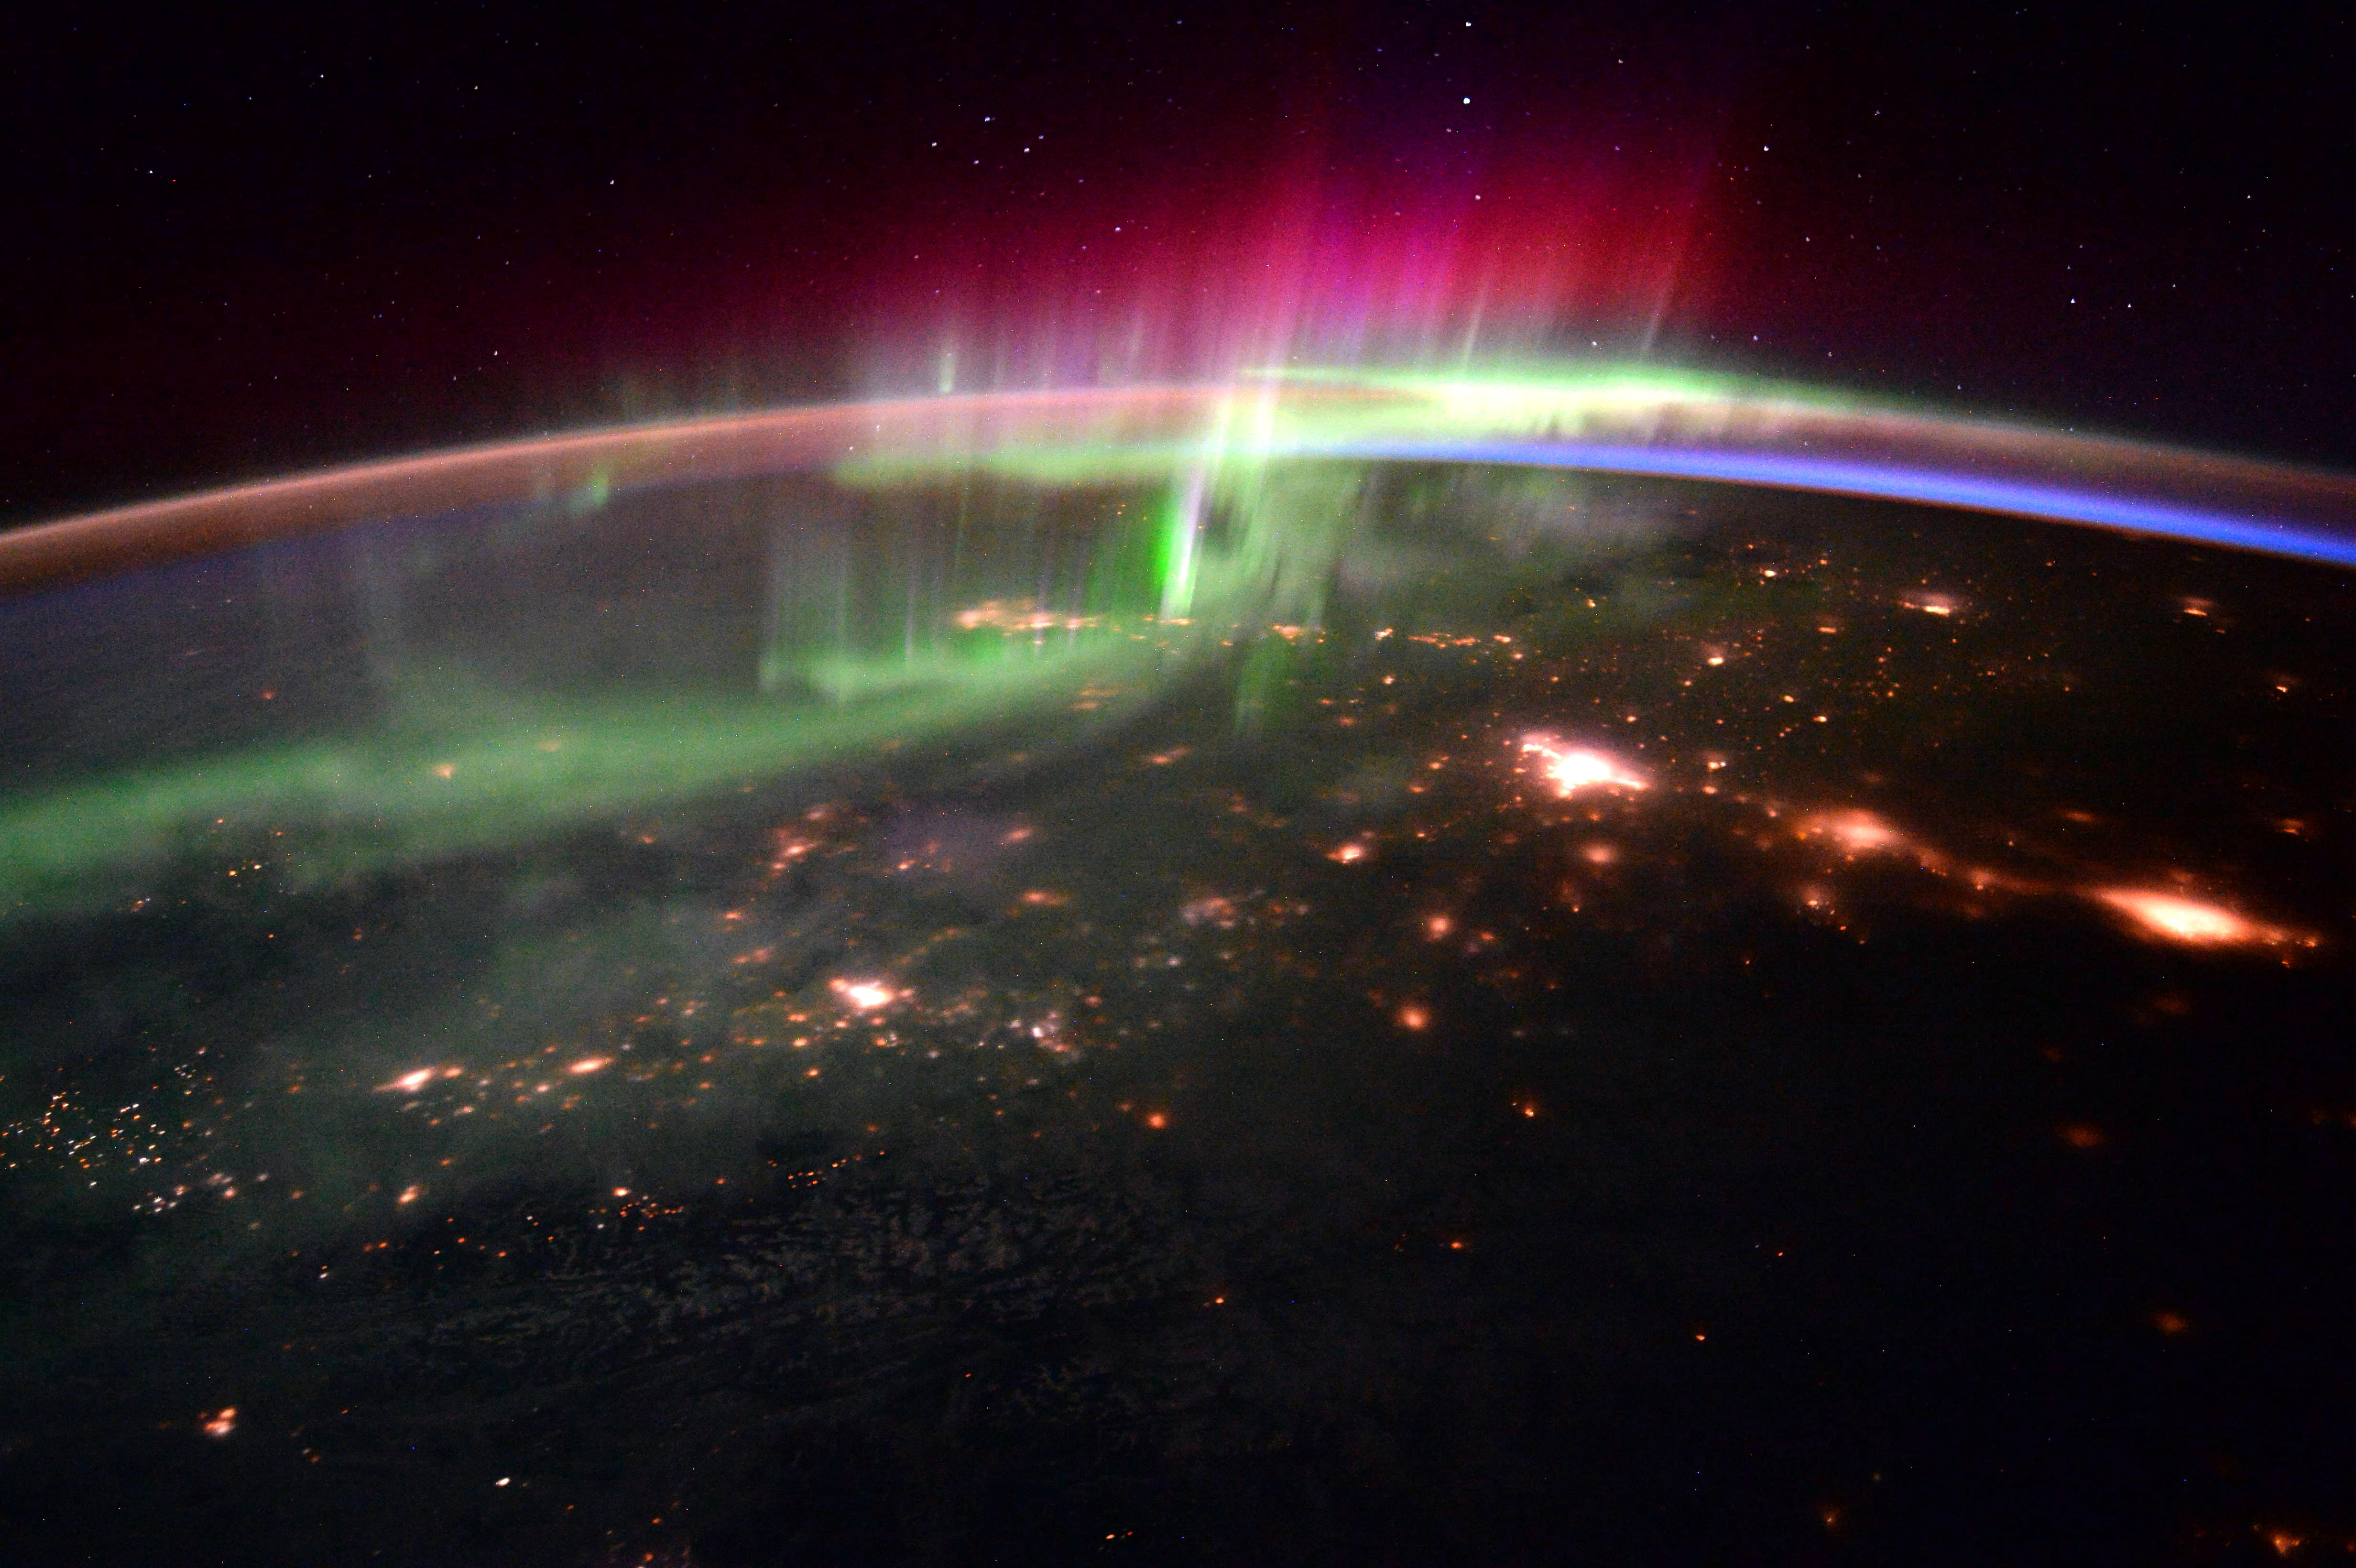 space in images 2017 10 aurora over northern canada